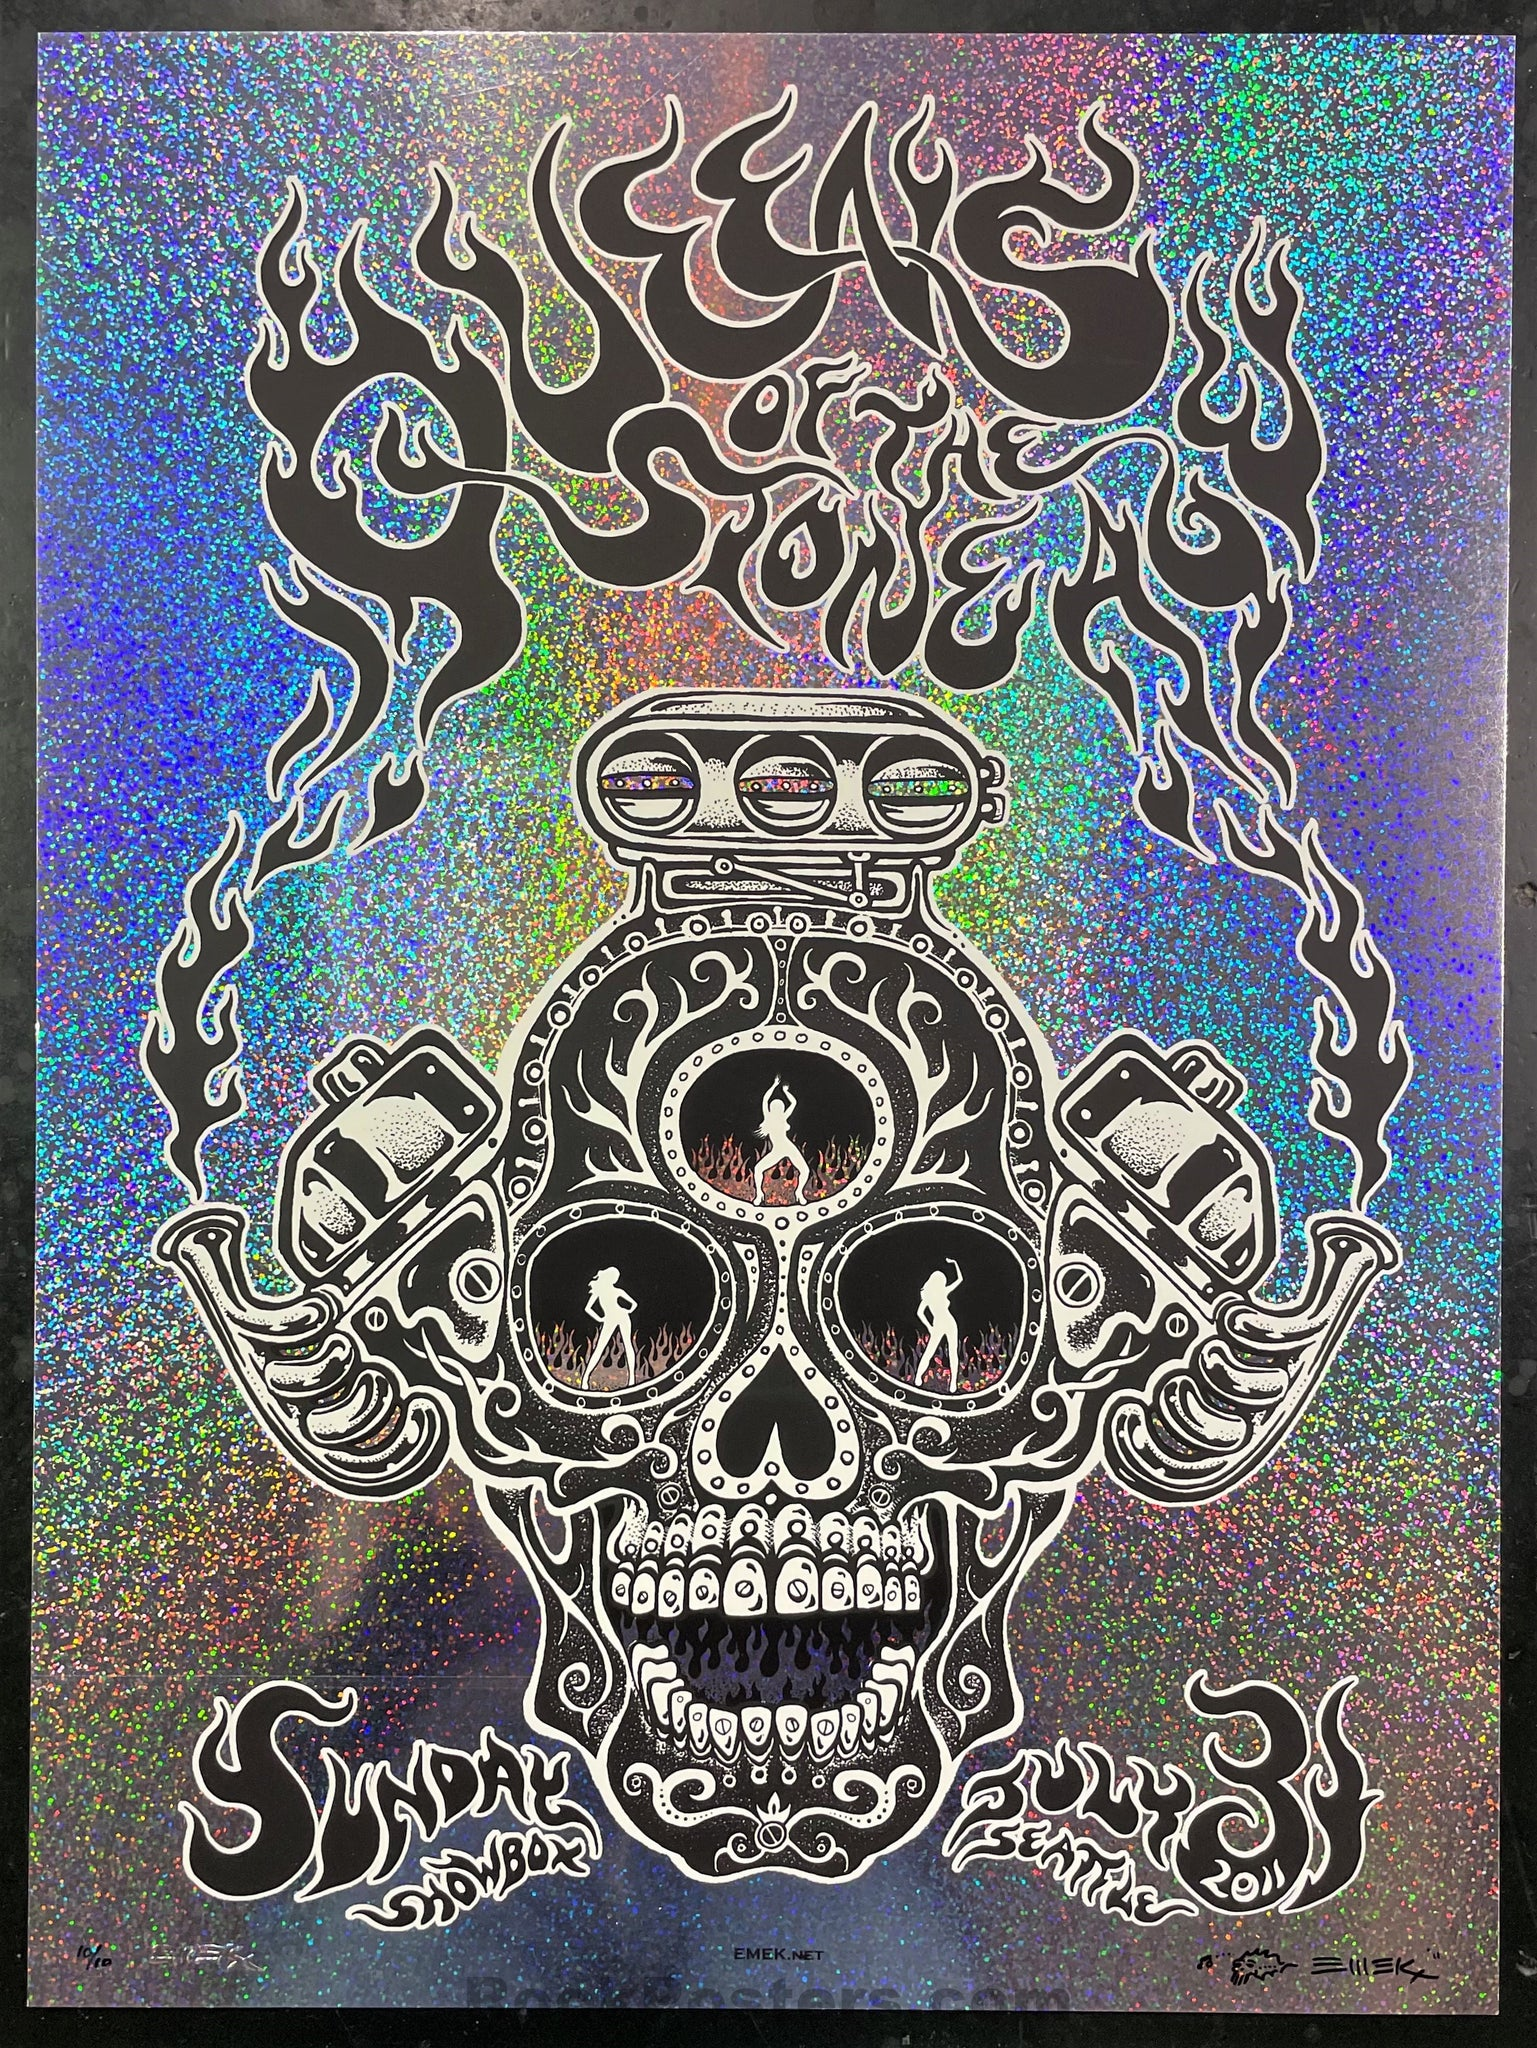 AUCTION - Emek - Queens of the Stone Age Seattle '11 - Sparkle Foil Black - Edition of 10 - Mint